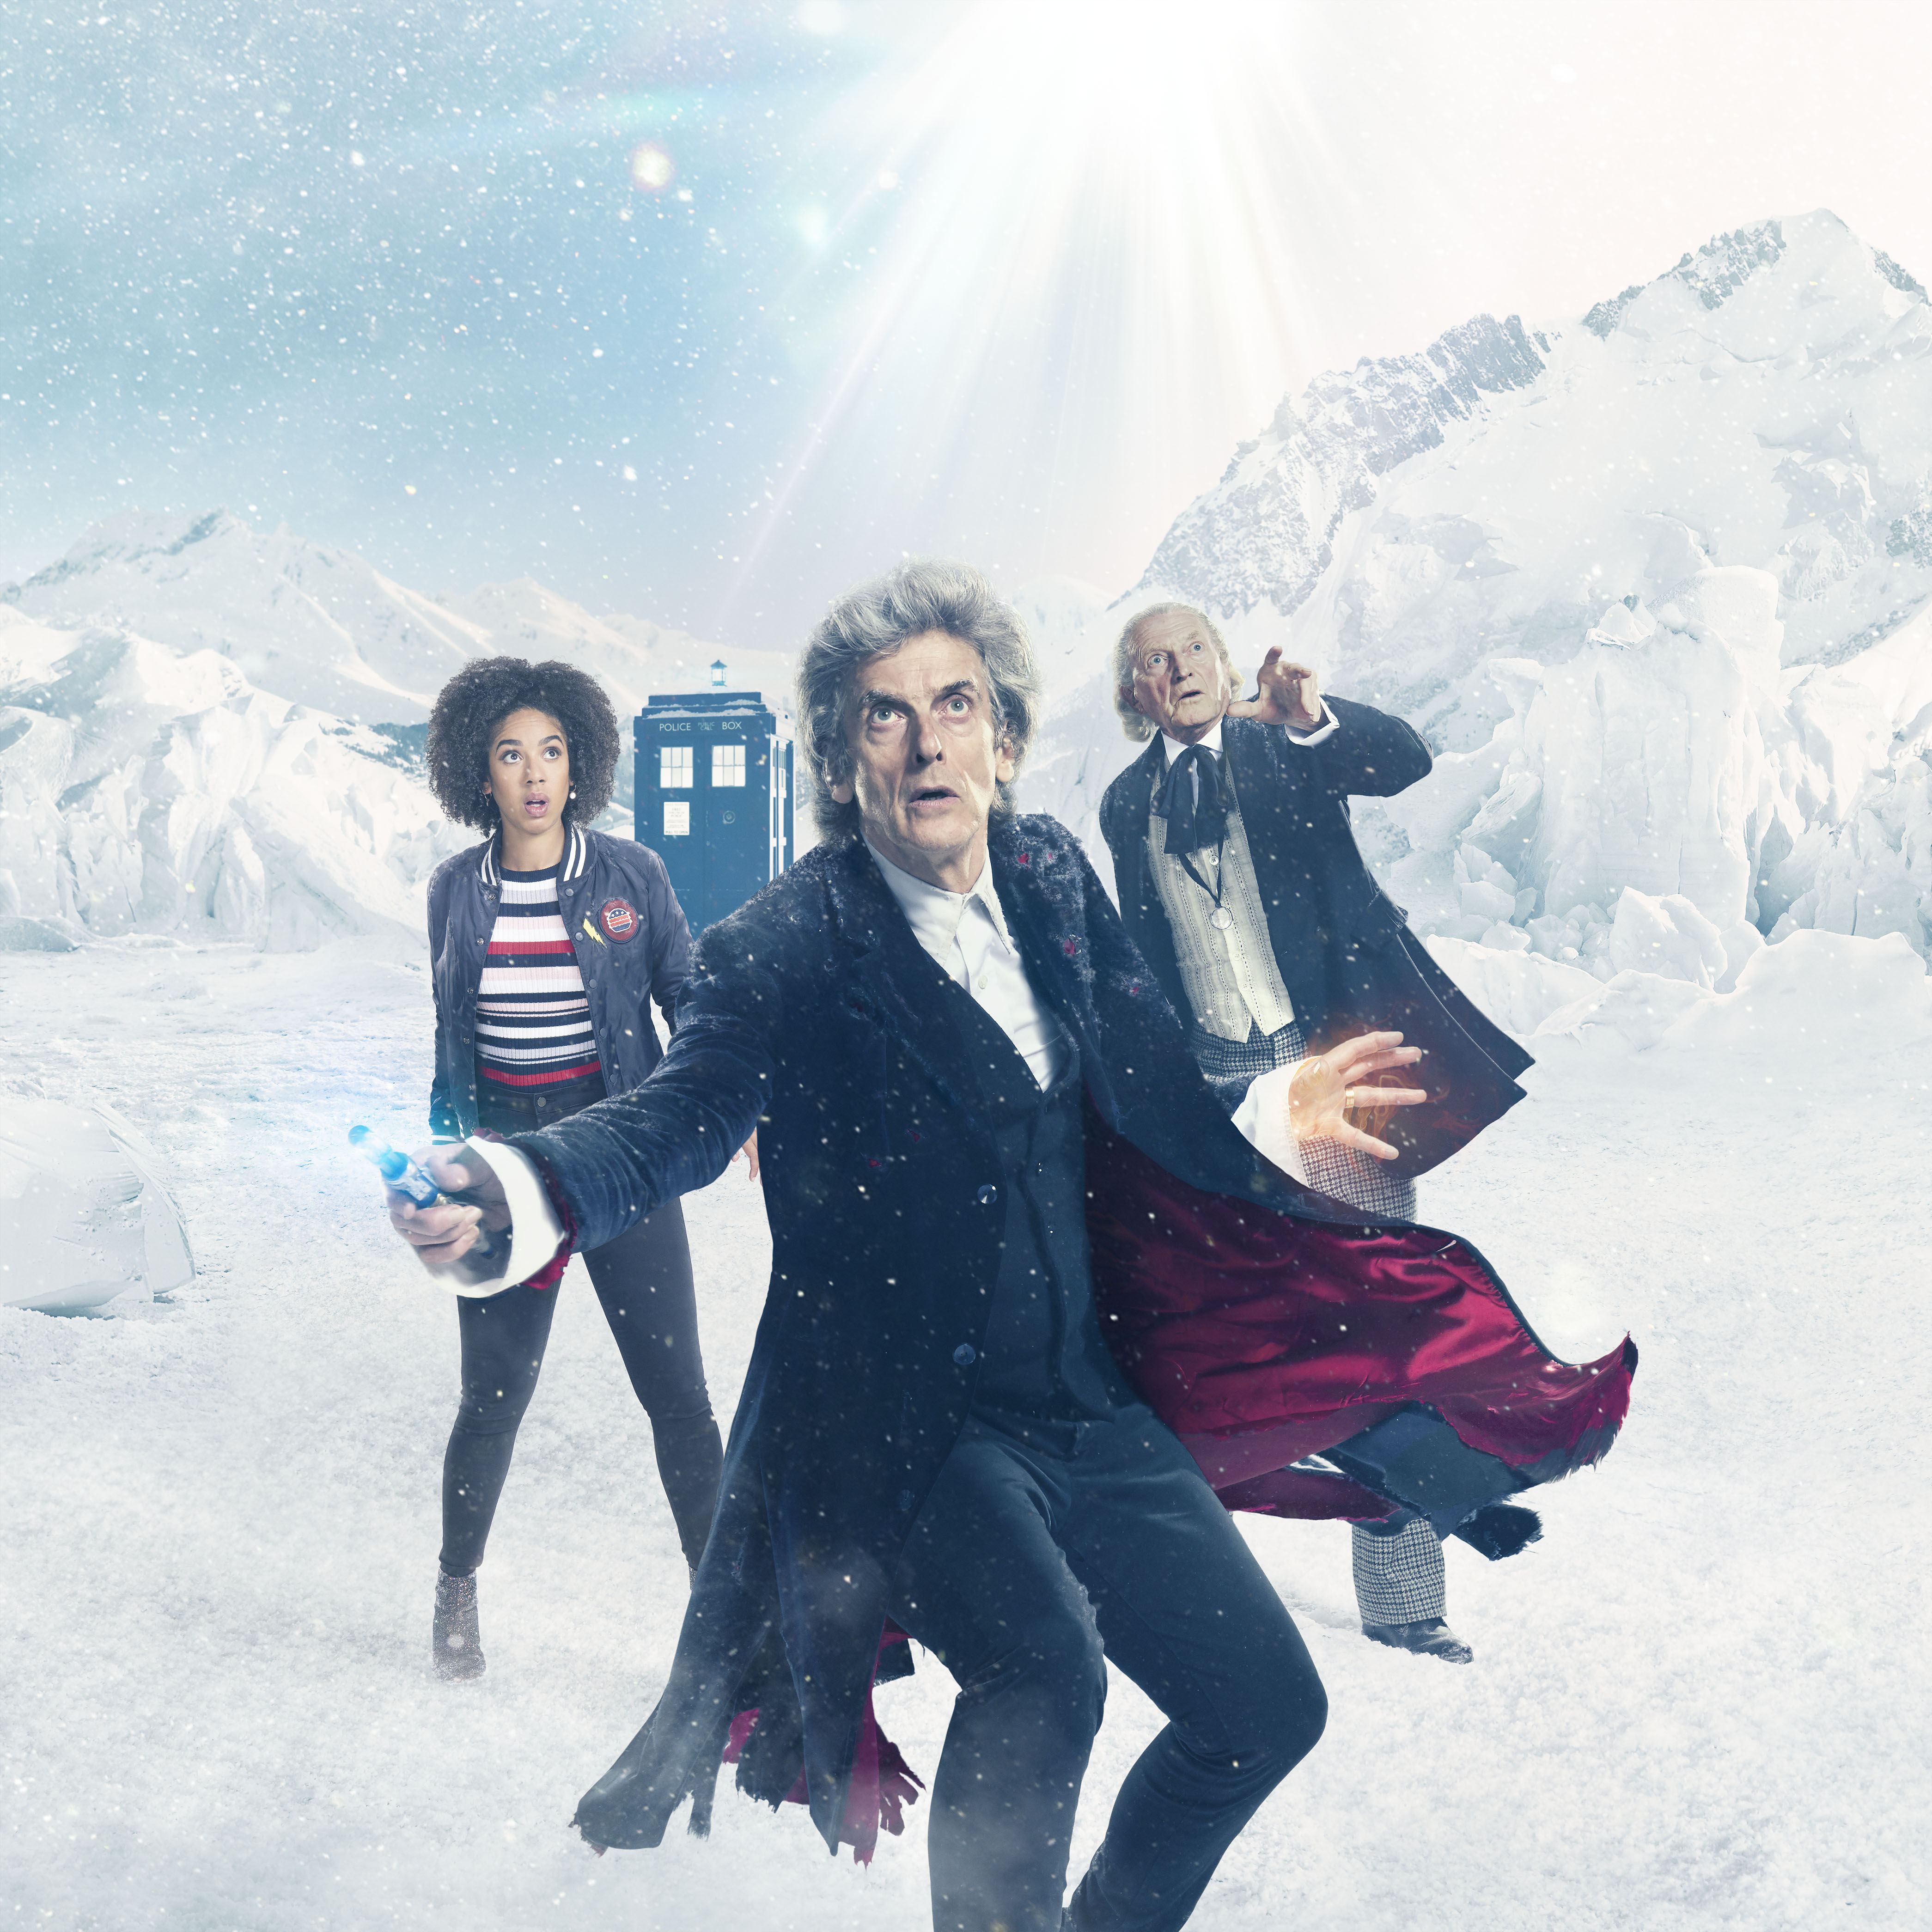 Twice Upon A Time - The Doctor Who Christmas Special (Credit: BBC)